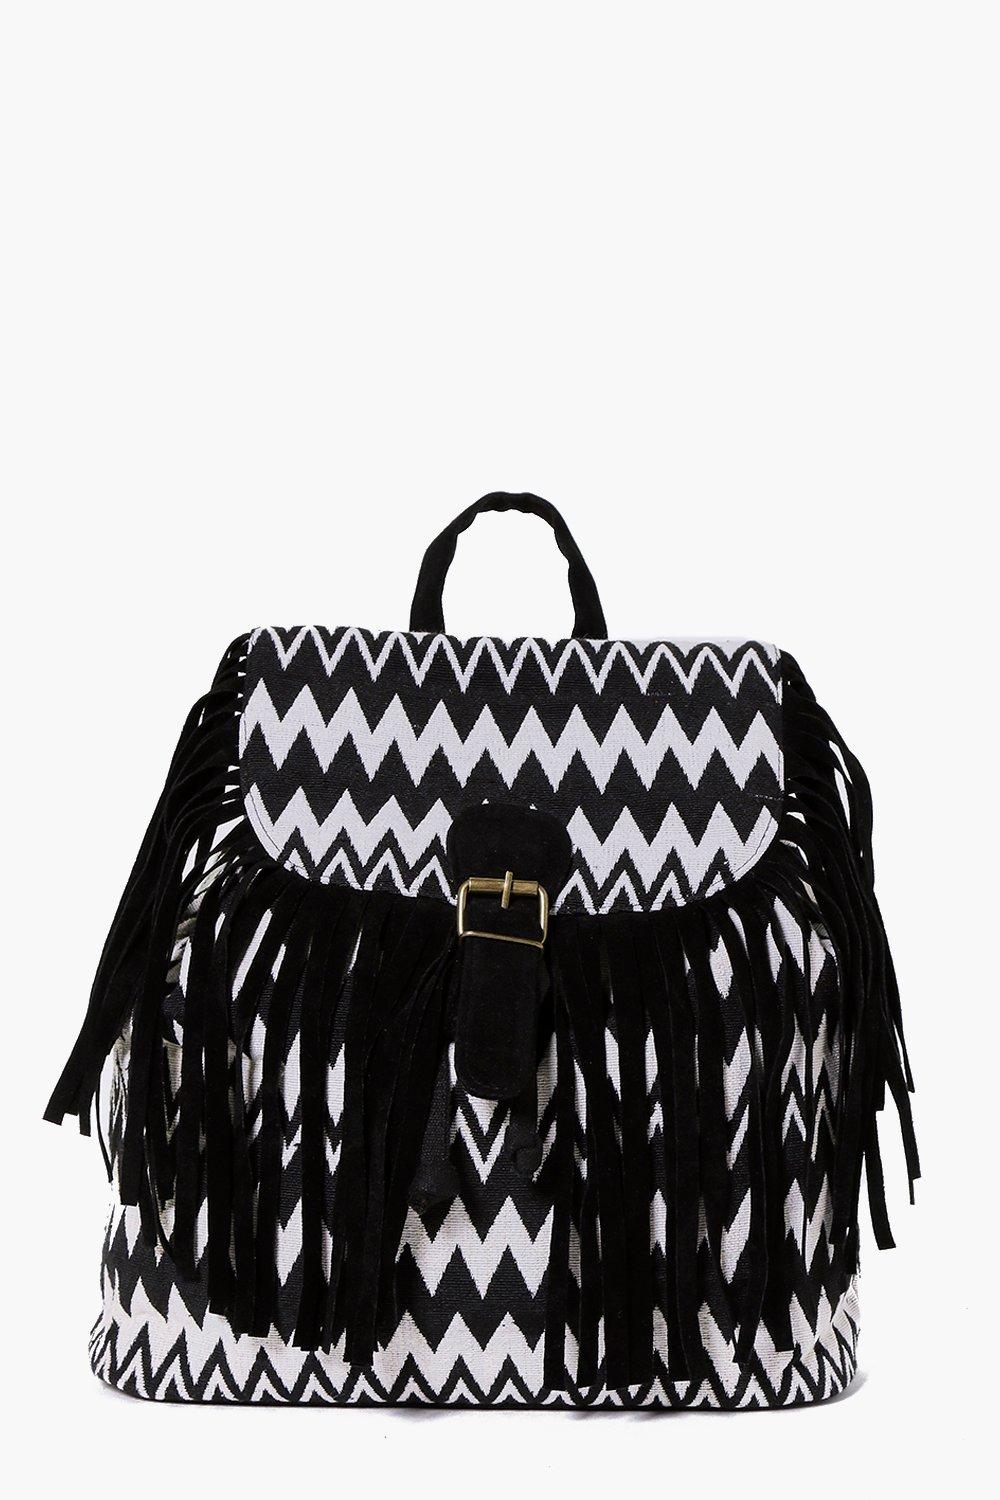 Product photo of Zig zag tassel mono backpack black